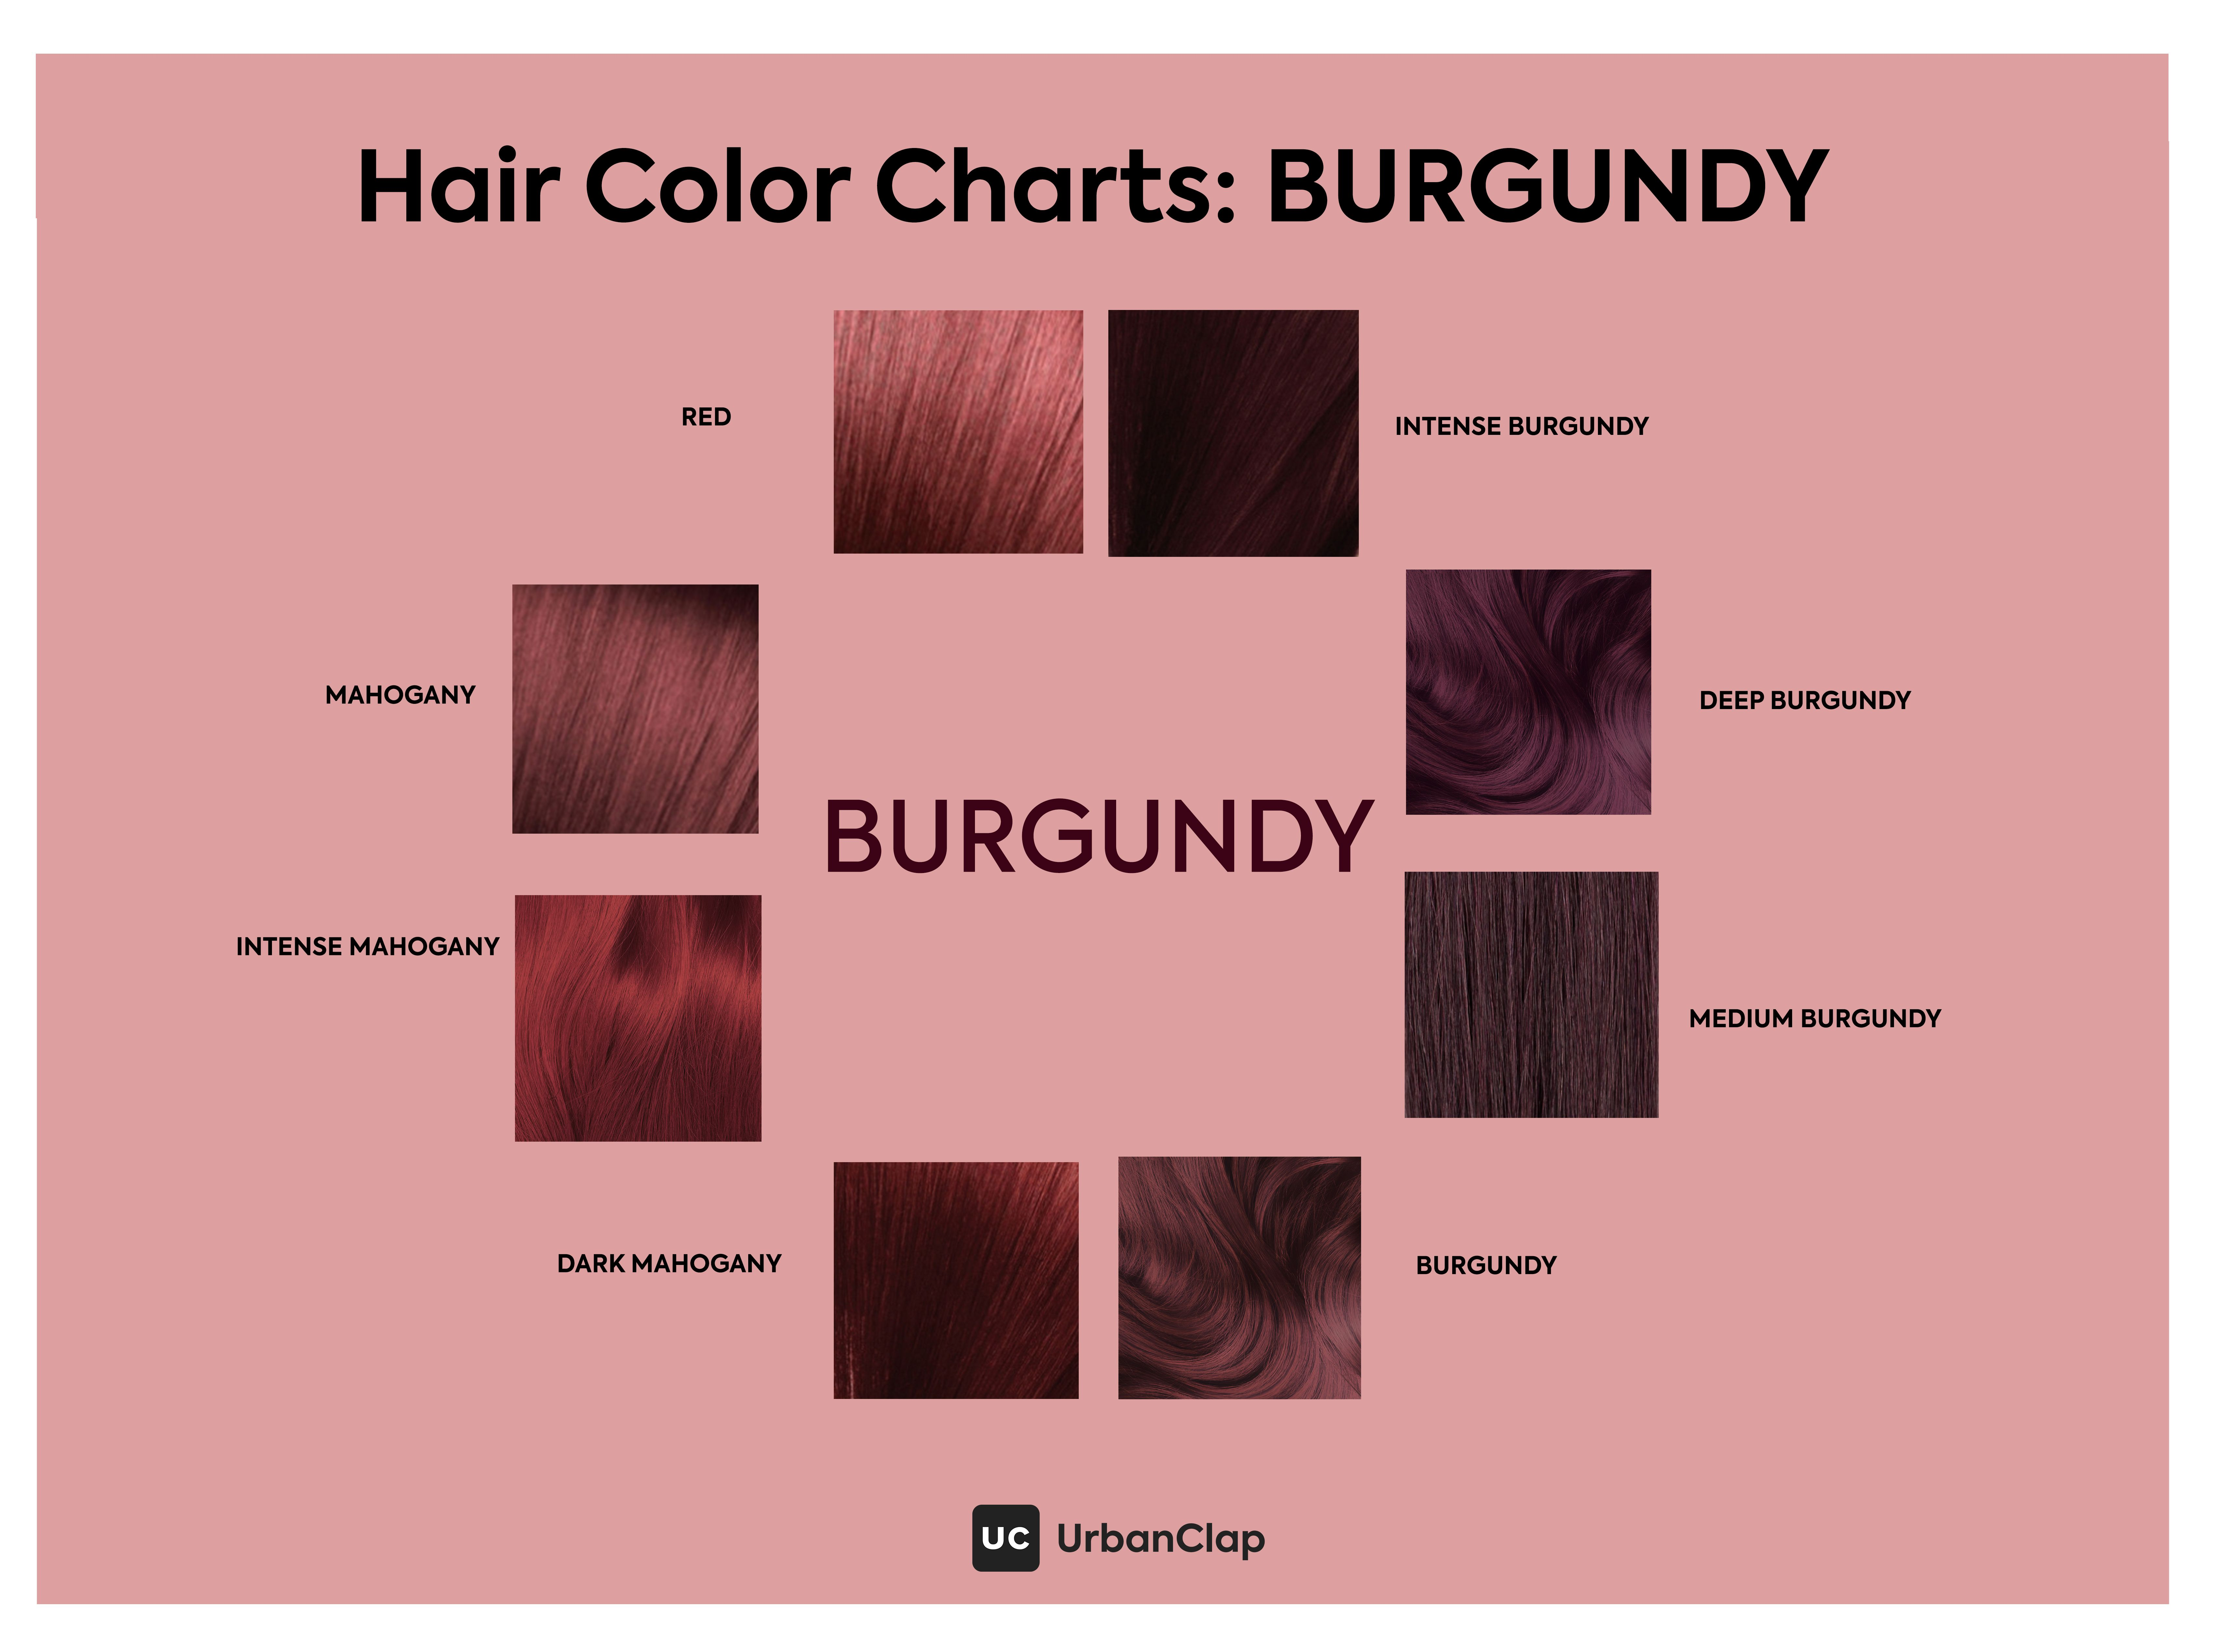 Not Too Purple Not Too Red Is What Makes Burgundy Such A Popular Choice Although Most Burgundy Hair Color Hair Color Chart Burgundy Hair Hair Color Burgundy